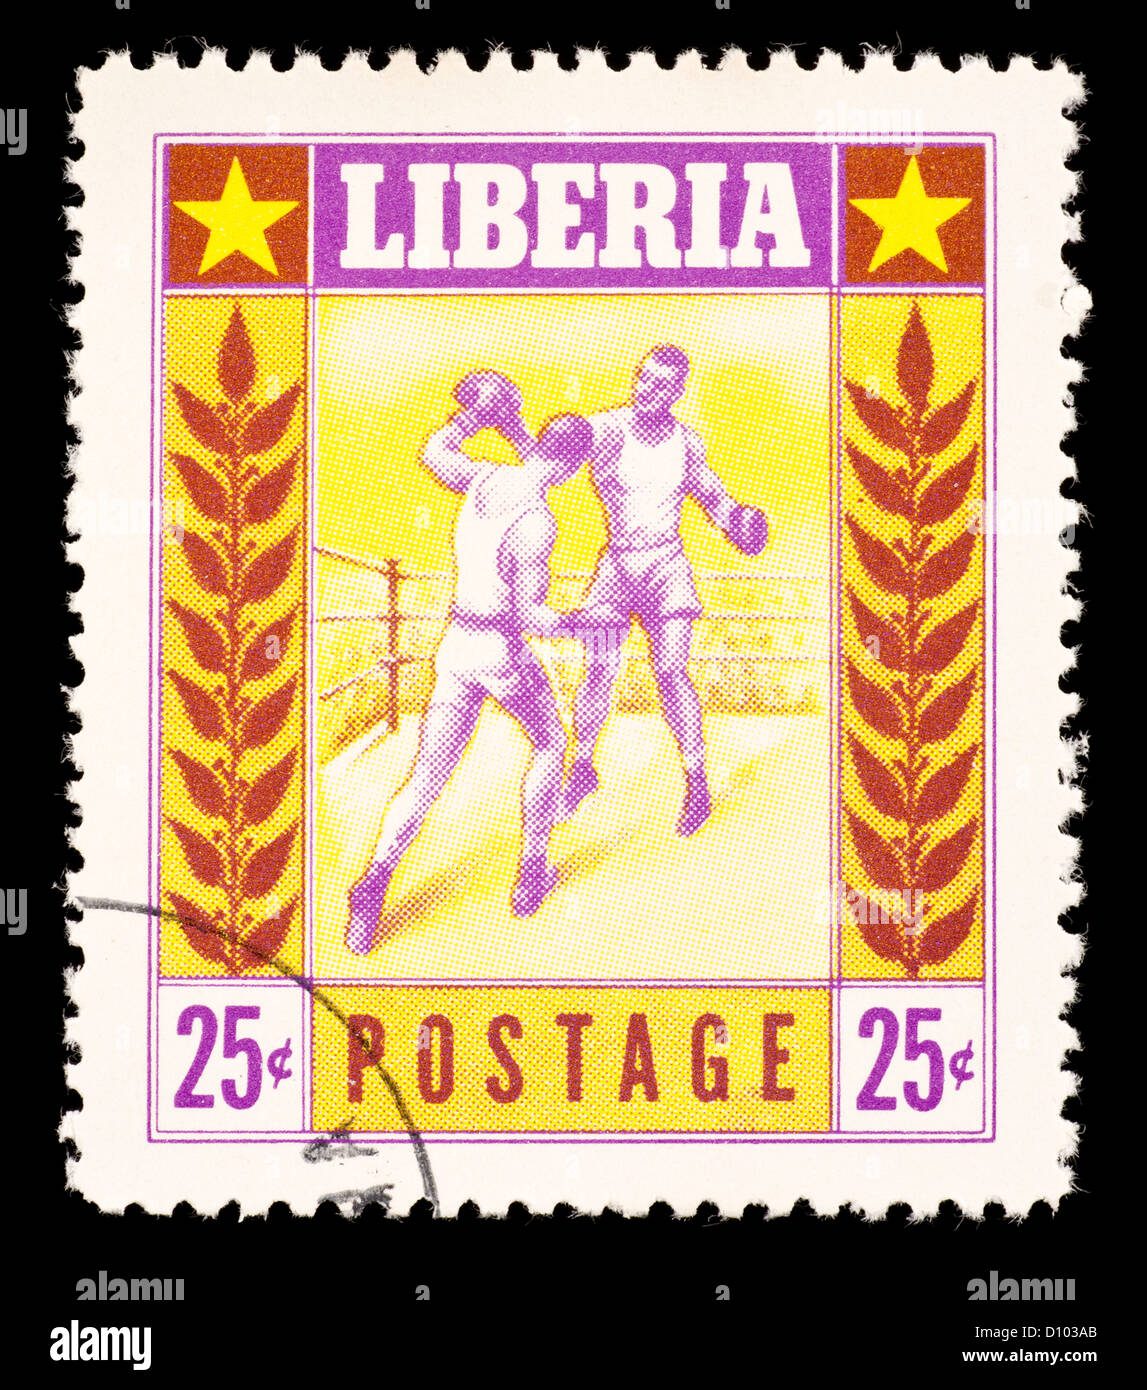 Postage stamp from Liberia depicting boxers. - Stock Image